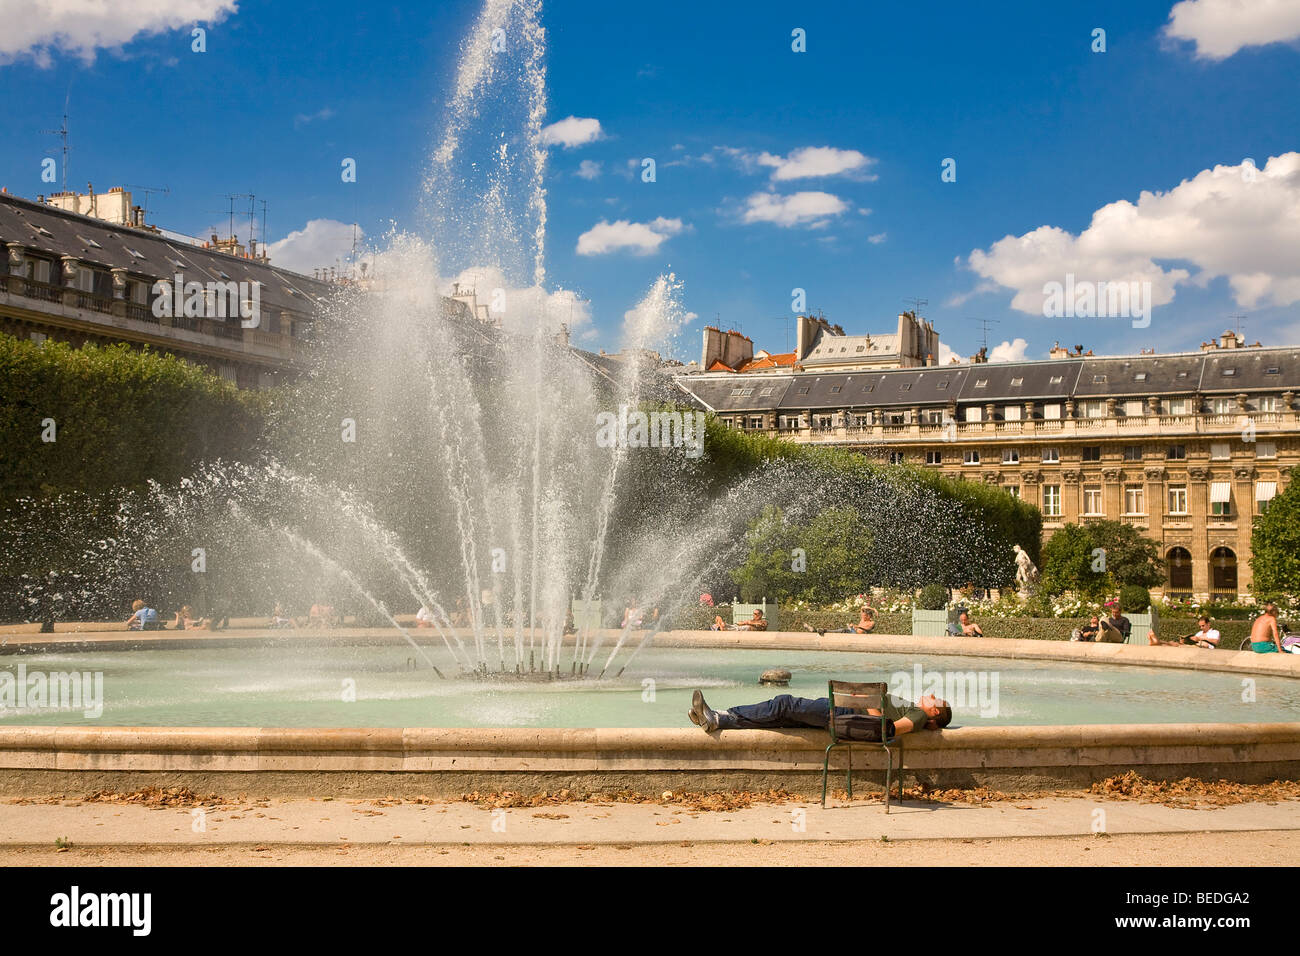 JARDIN DU PALAIS ROYAL, PARIS - Stock Image